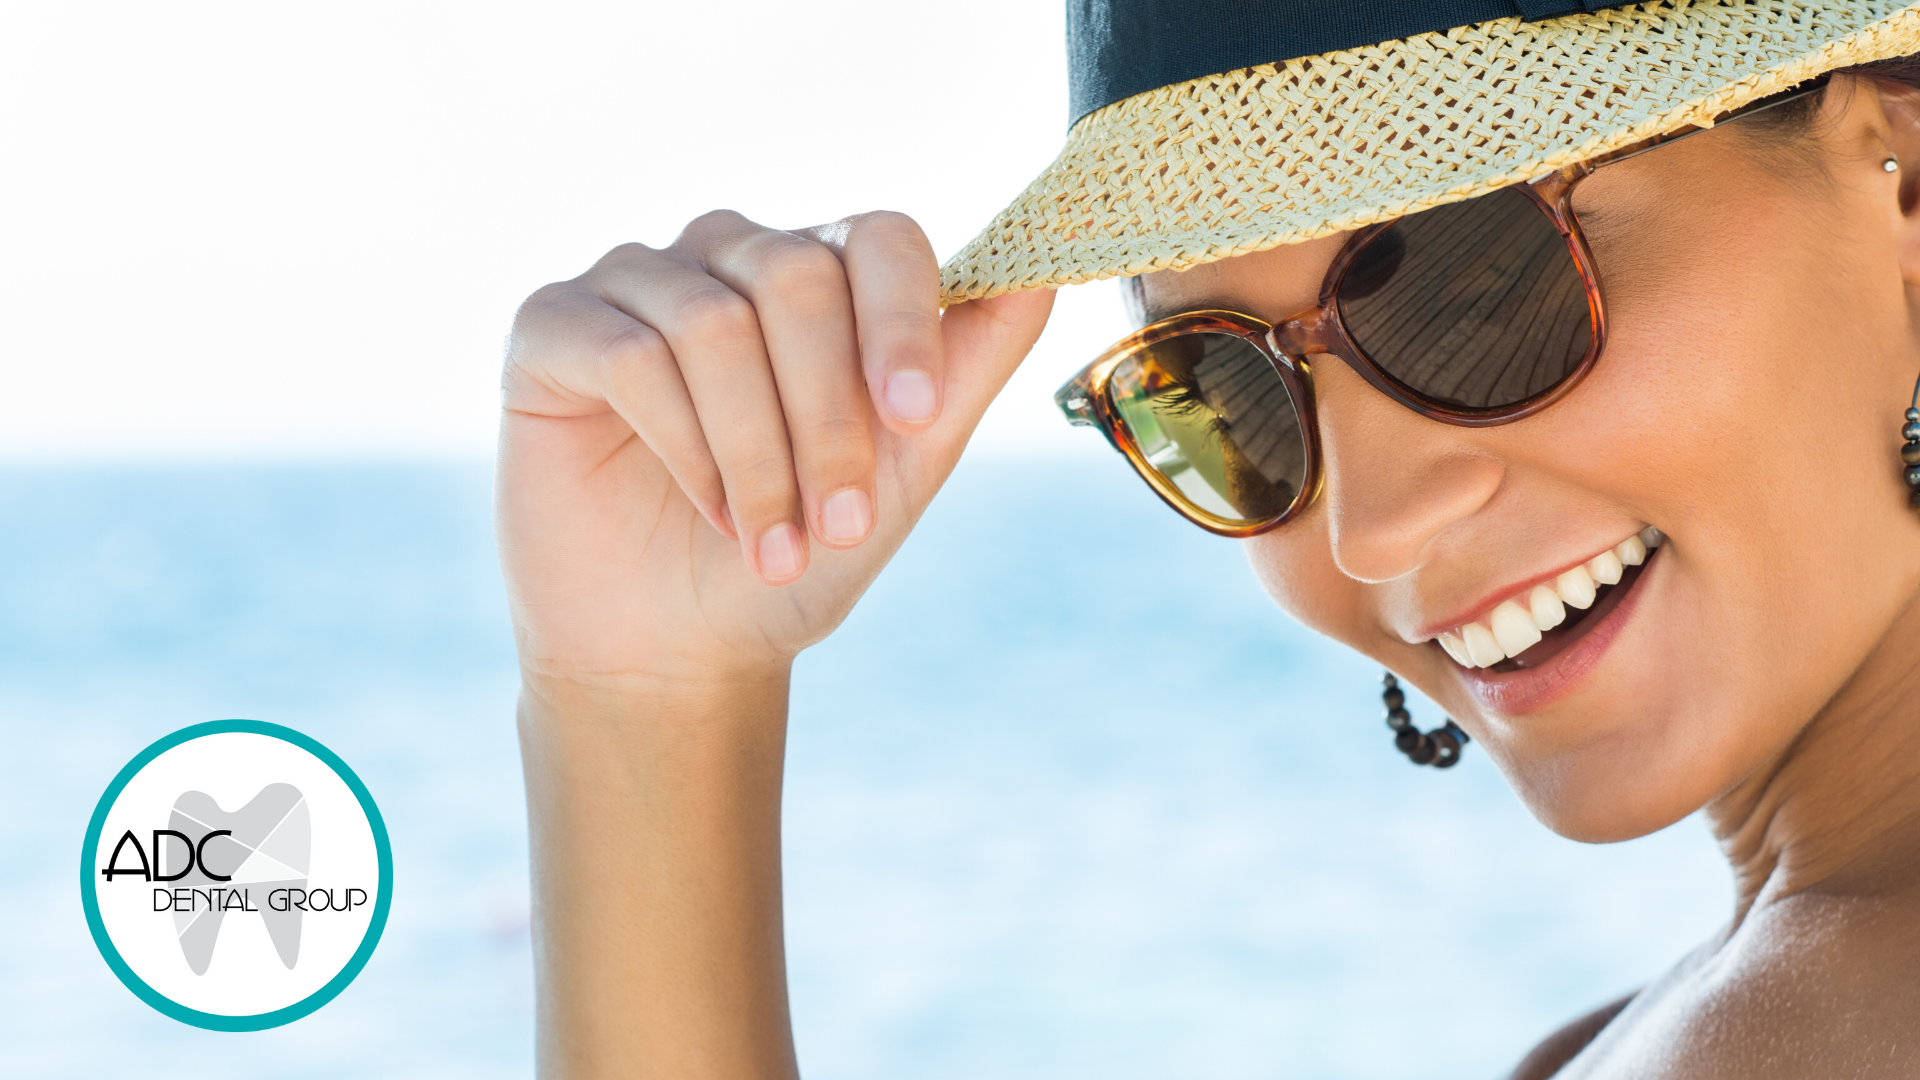 Woman wearing a hat and sunglasses smiling outside.